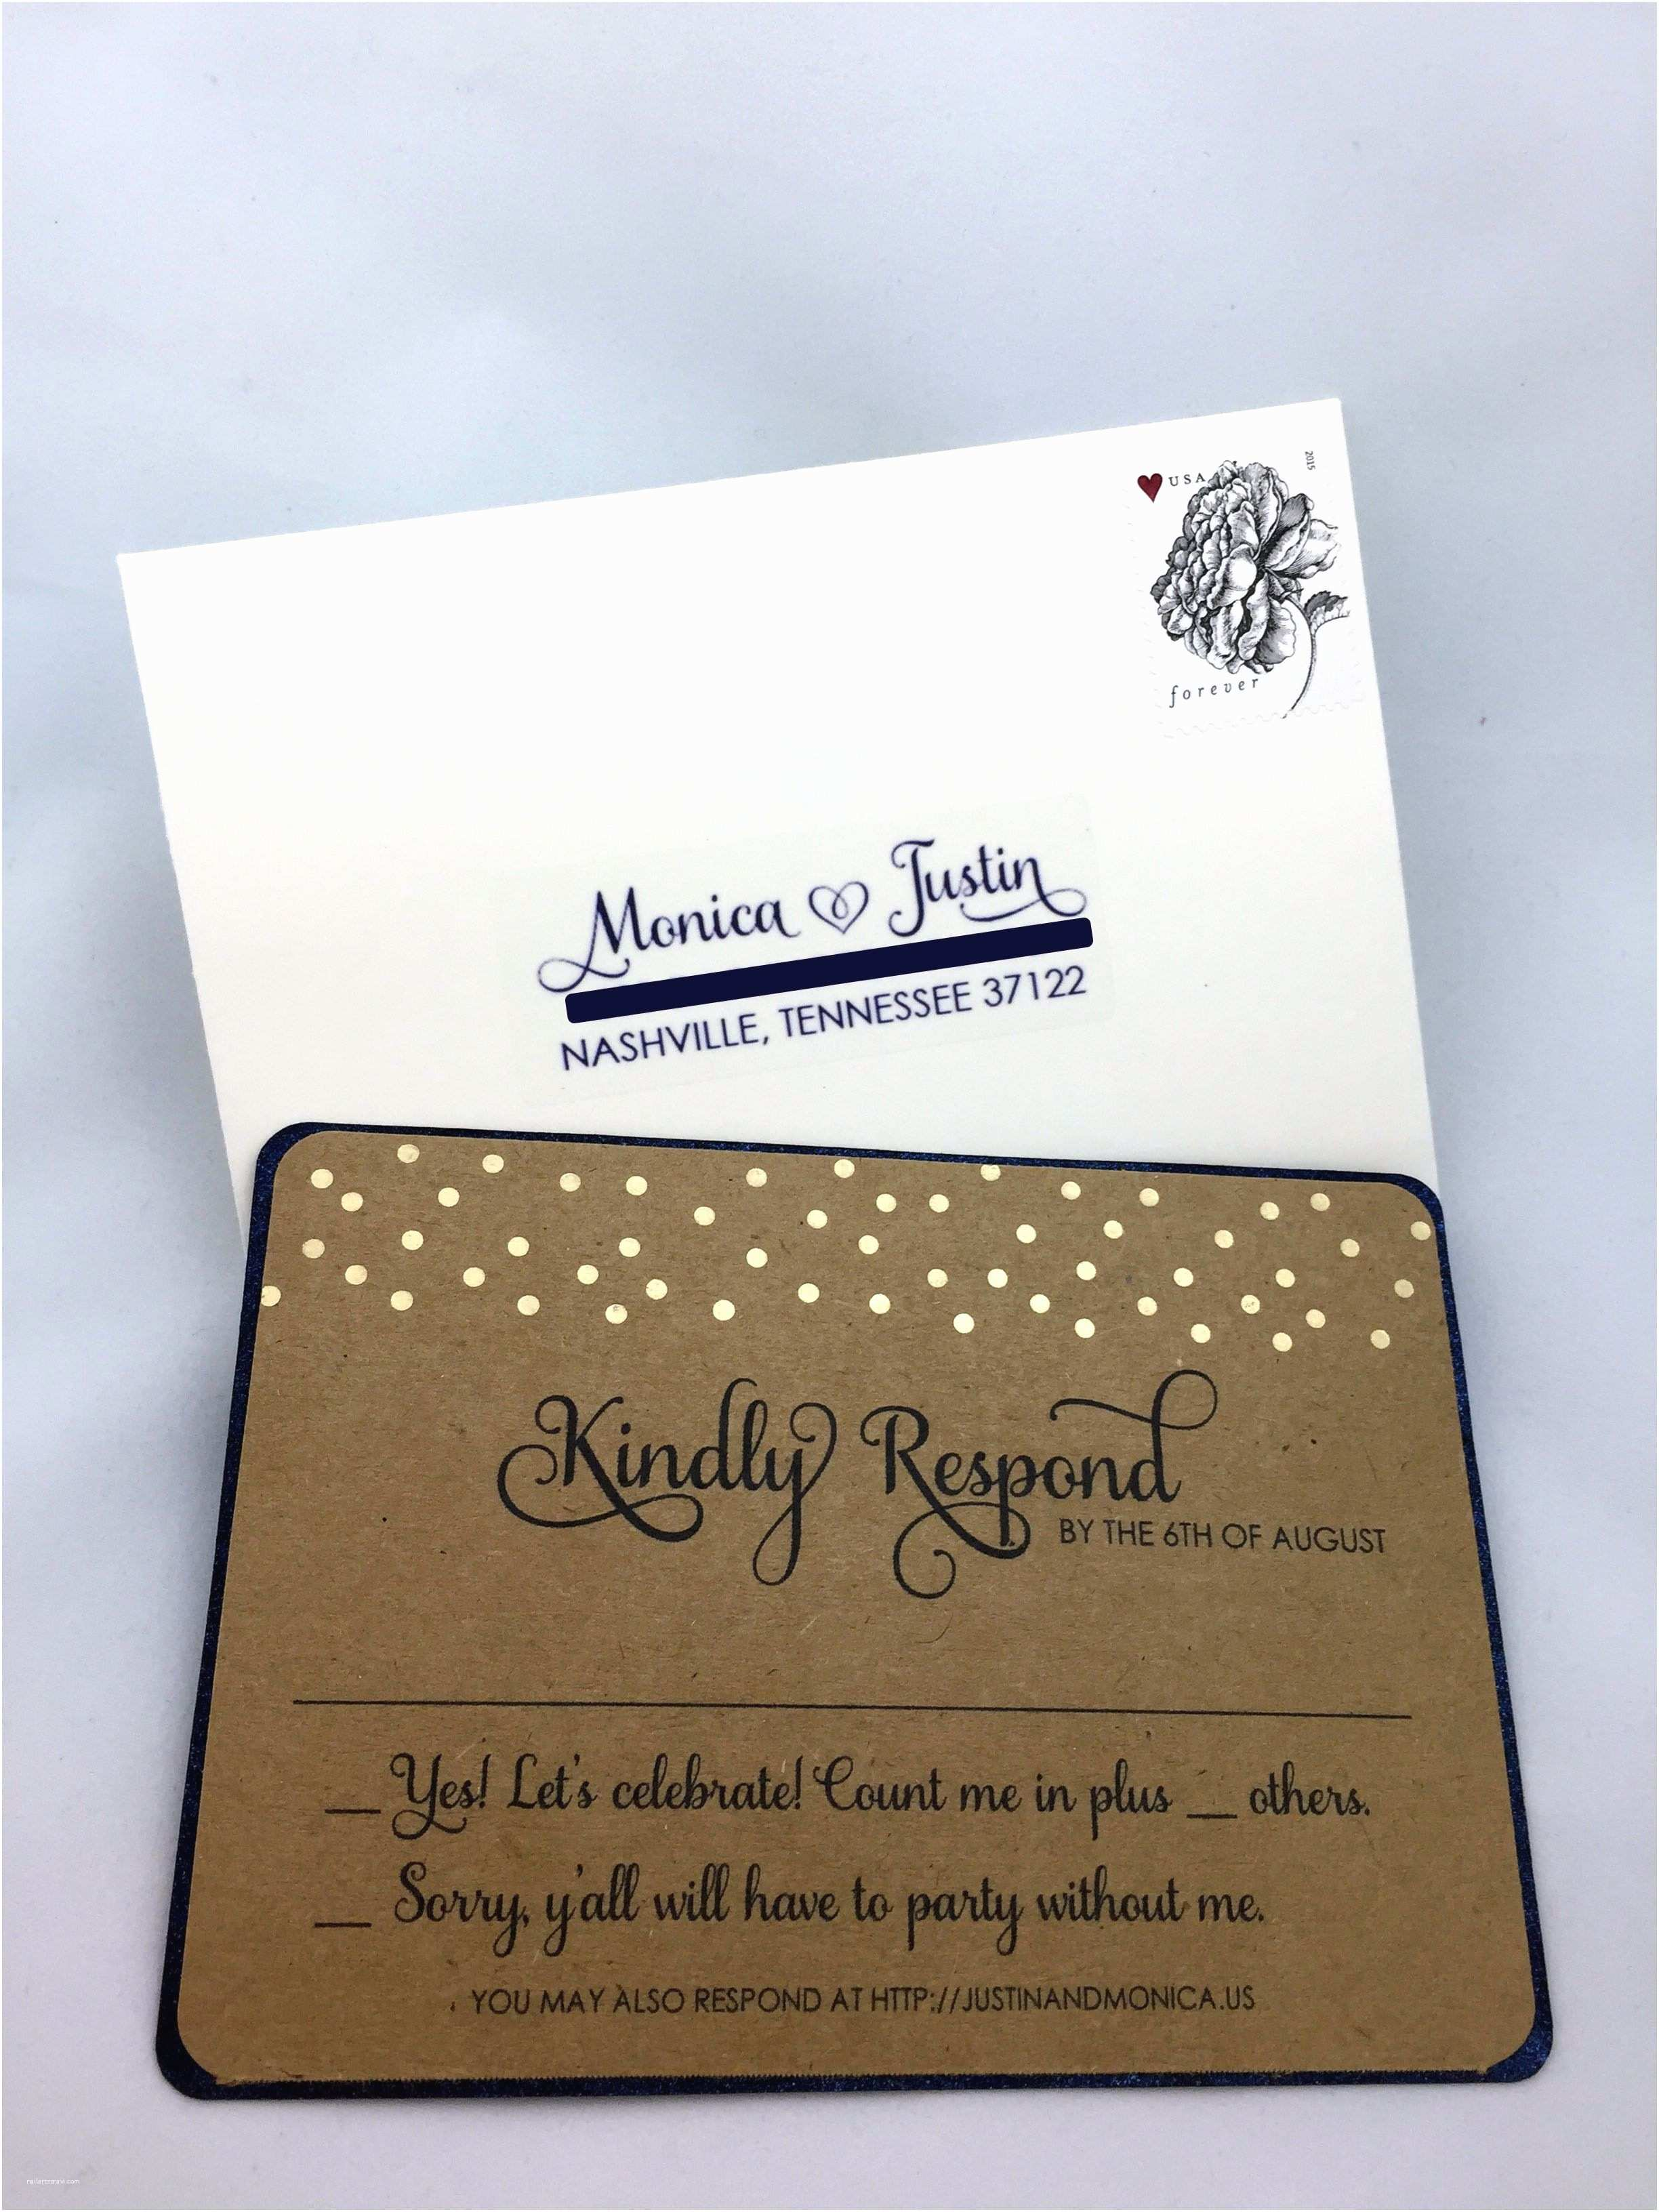 Wedding Invitations with Response Cards and Envelopes Invitations with Response Cards Wedding Invitations with